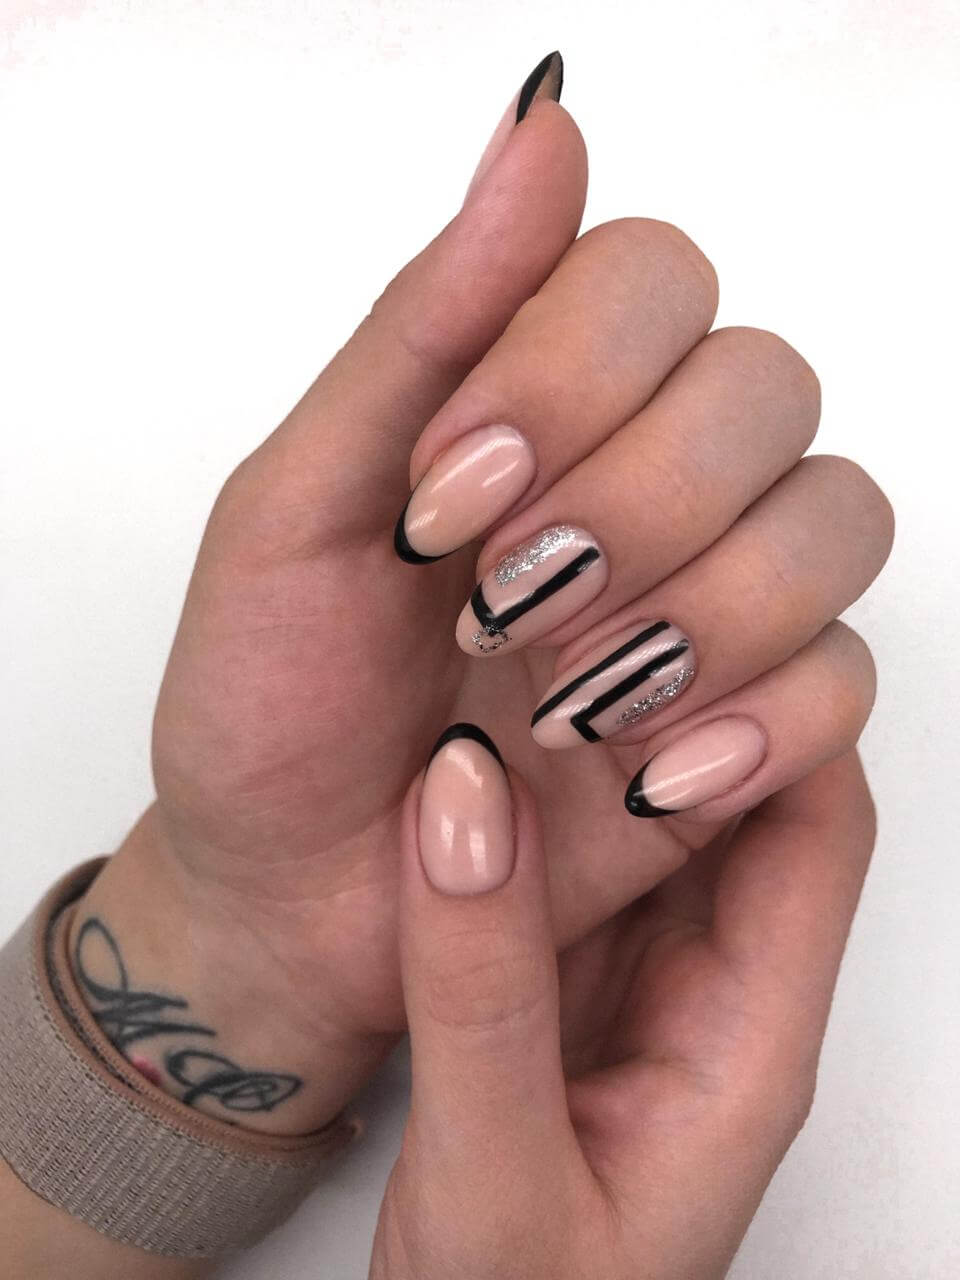 Elegant gel nails